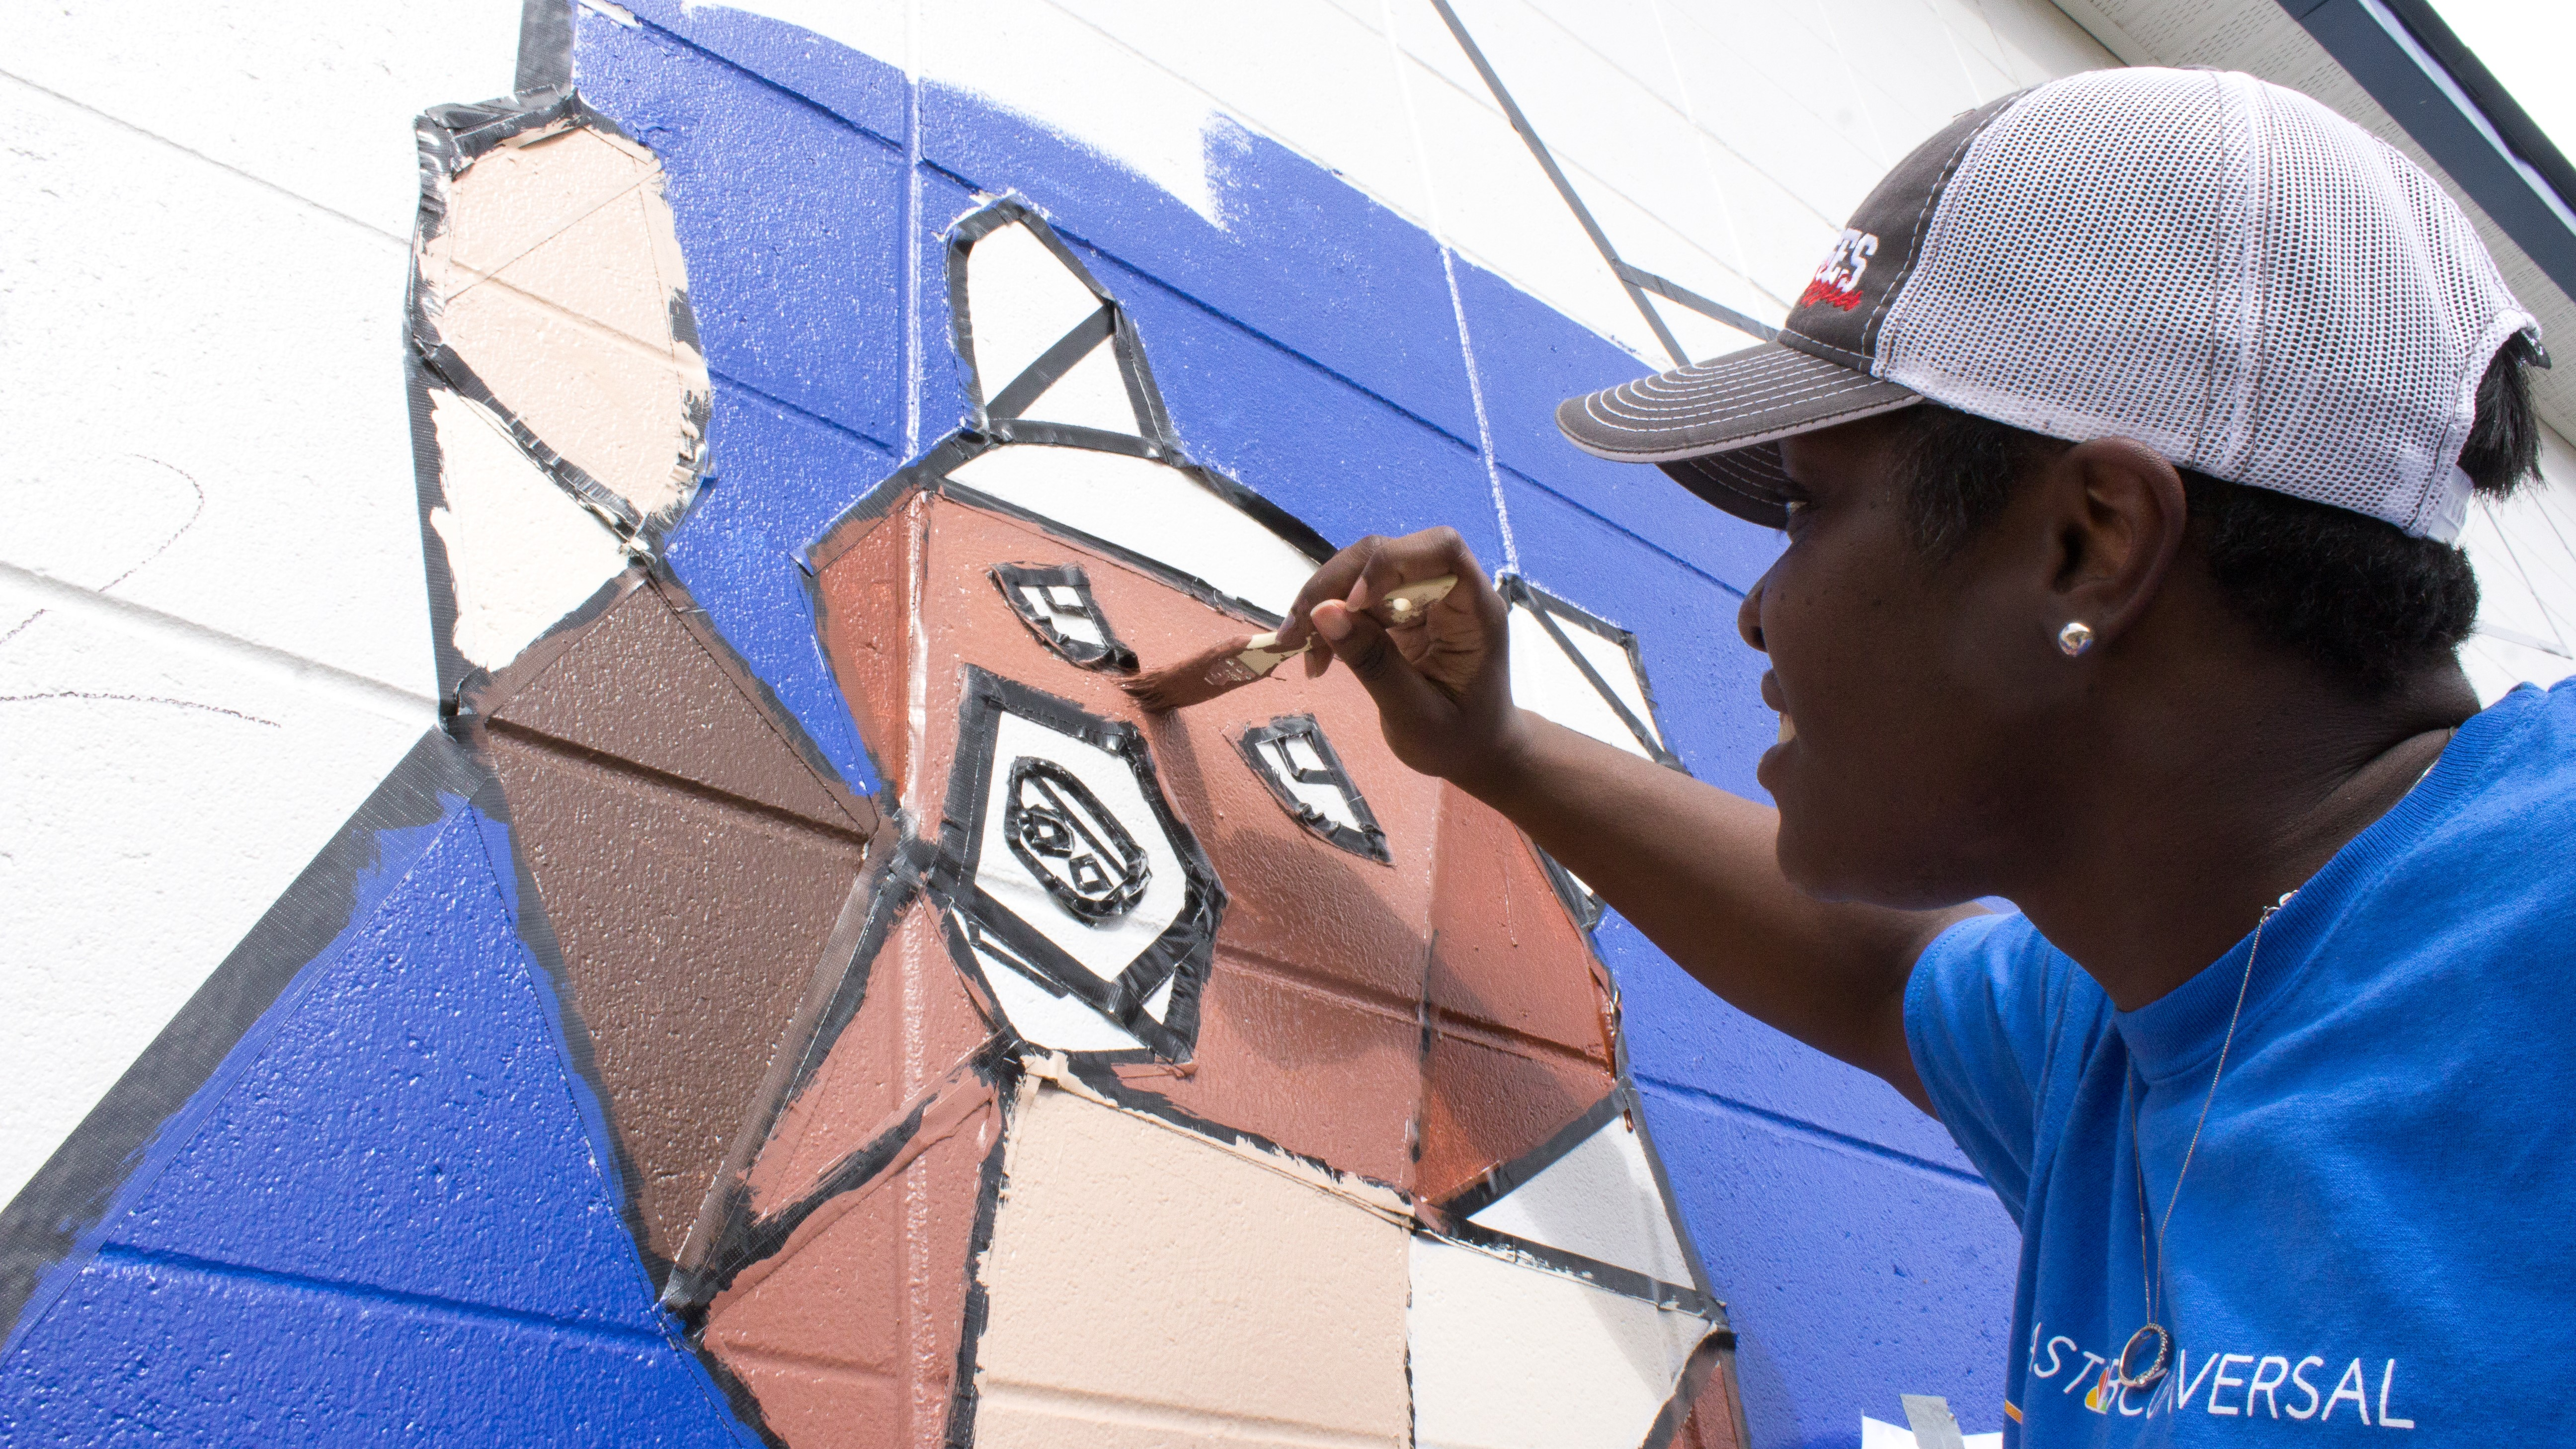 A Comcast Cares Day volunteer paints a mural.